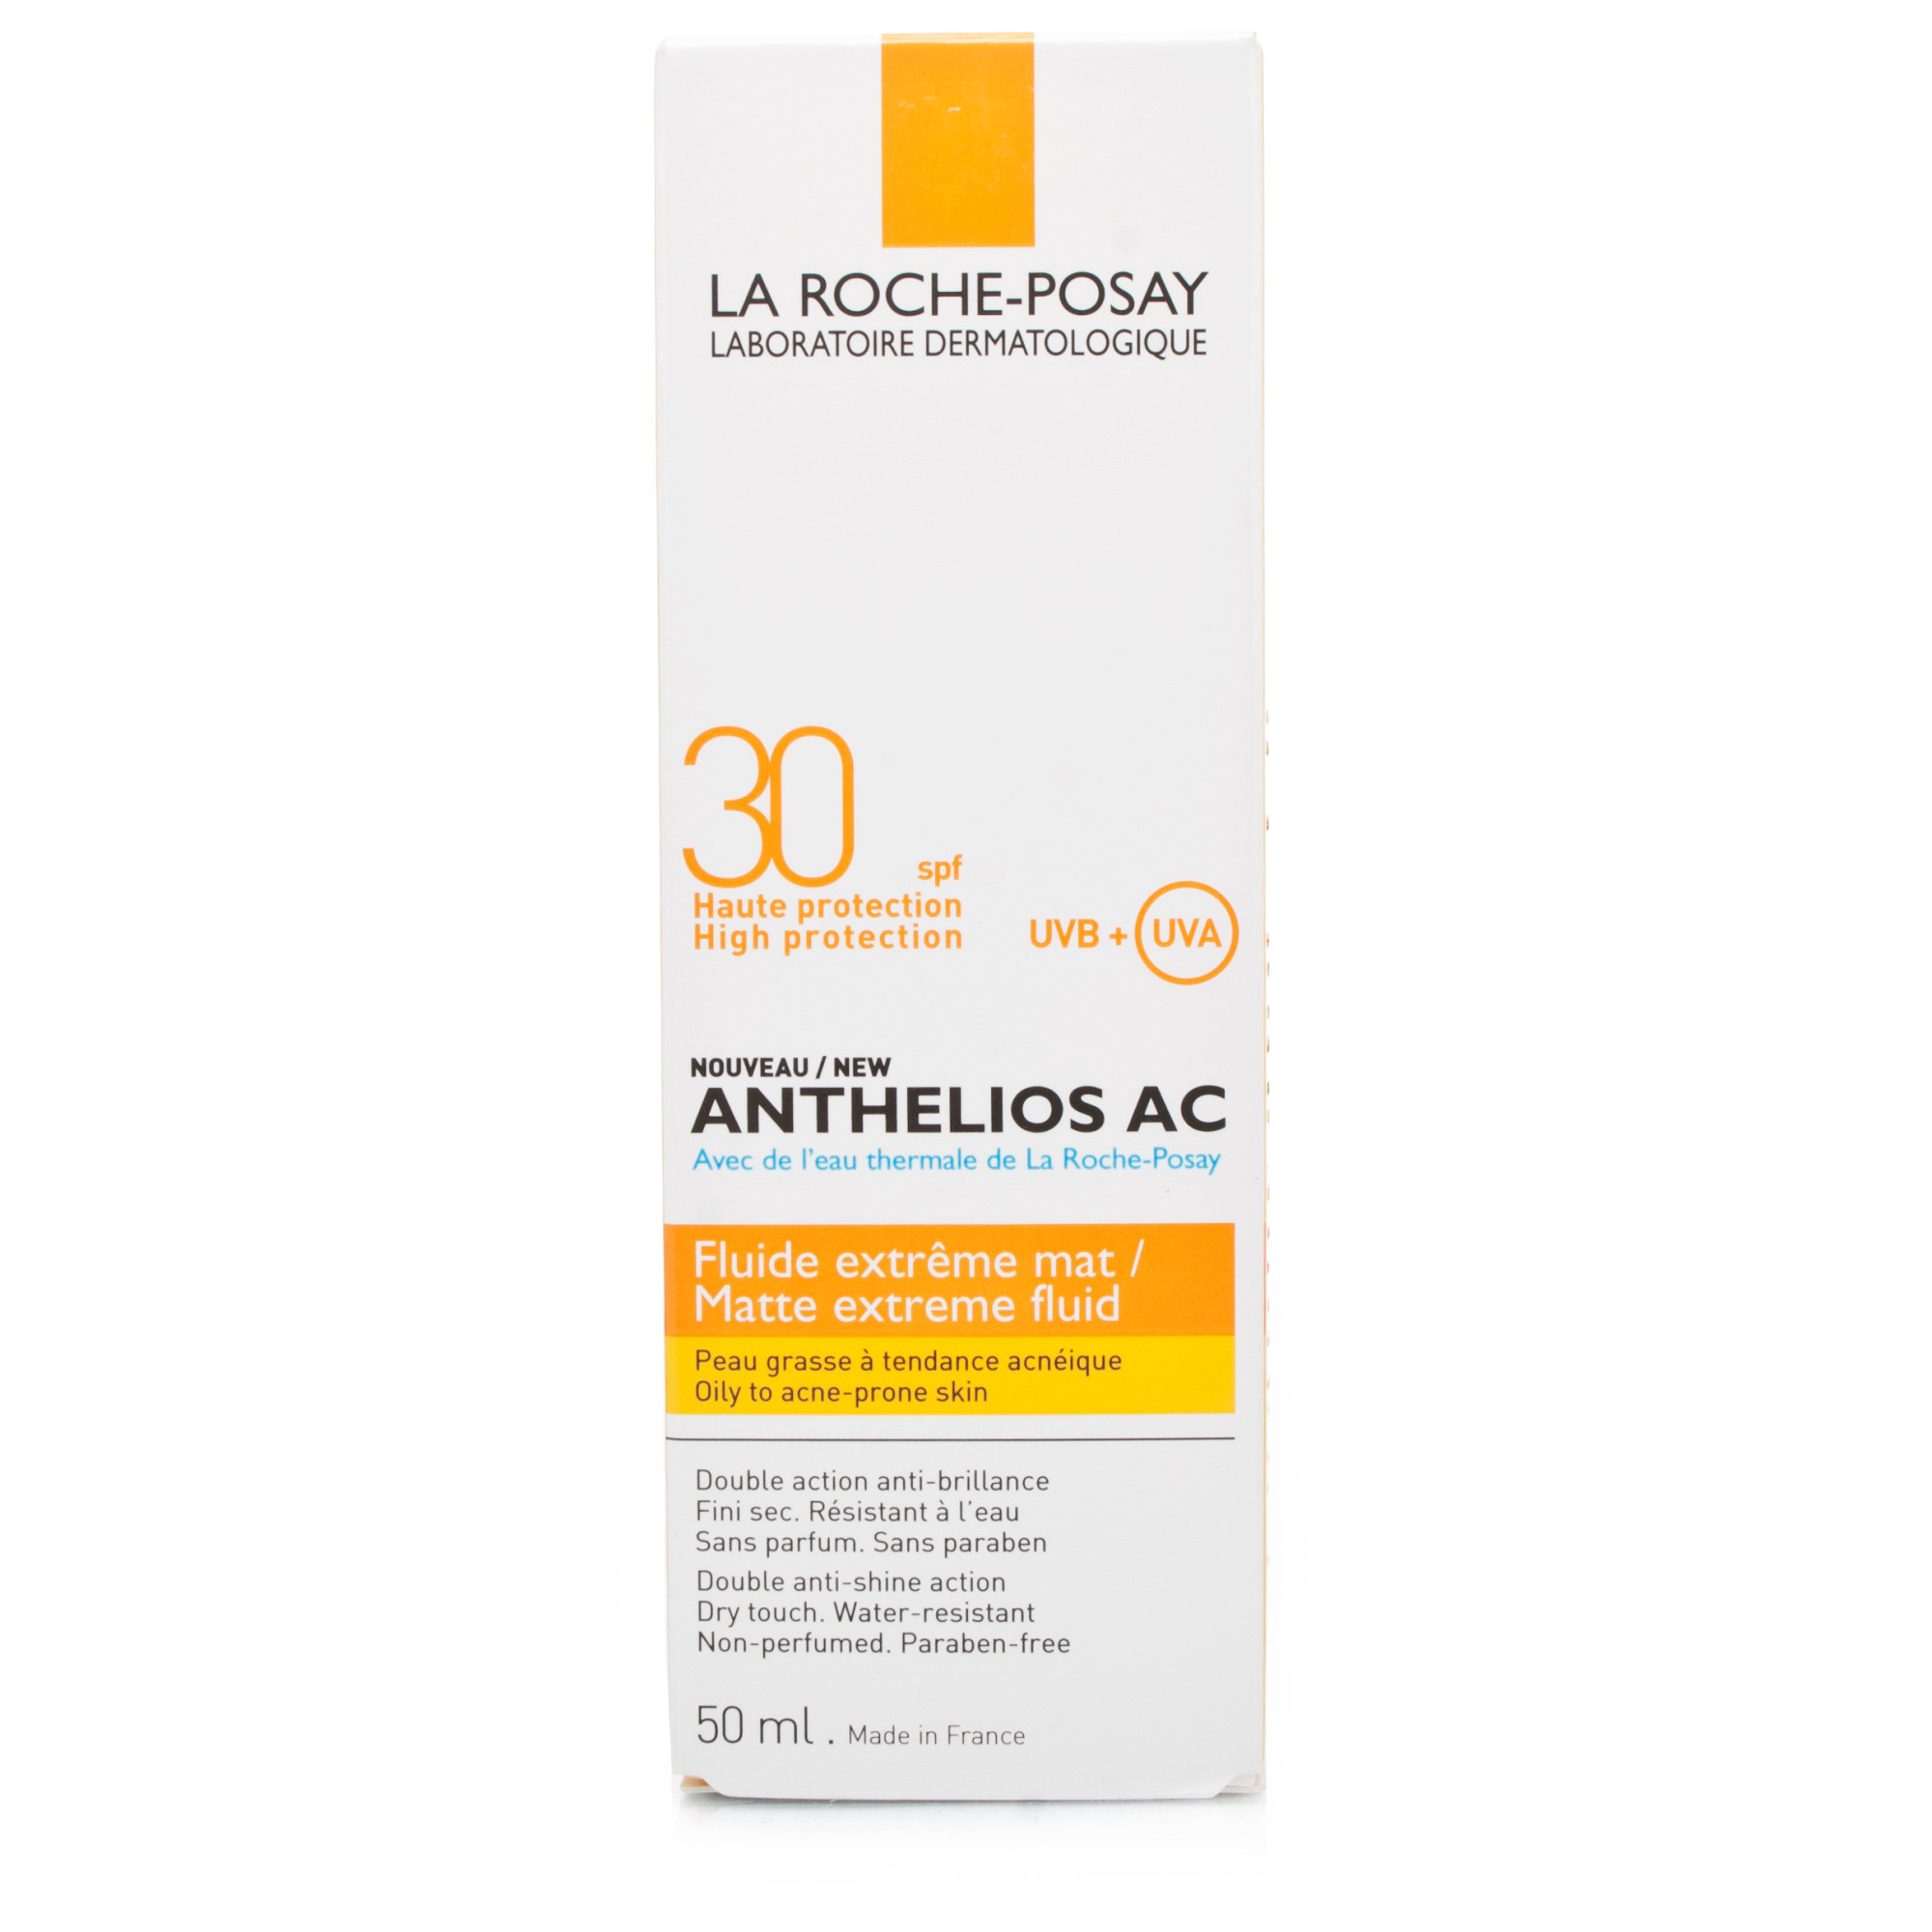 La Roche-Posay Anthelios AC Spf30 Extreme Fluid For Face